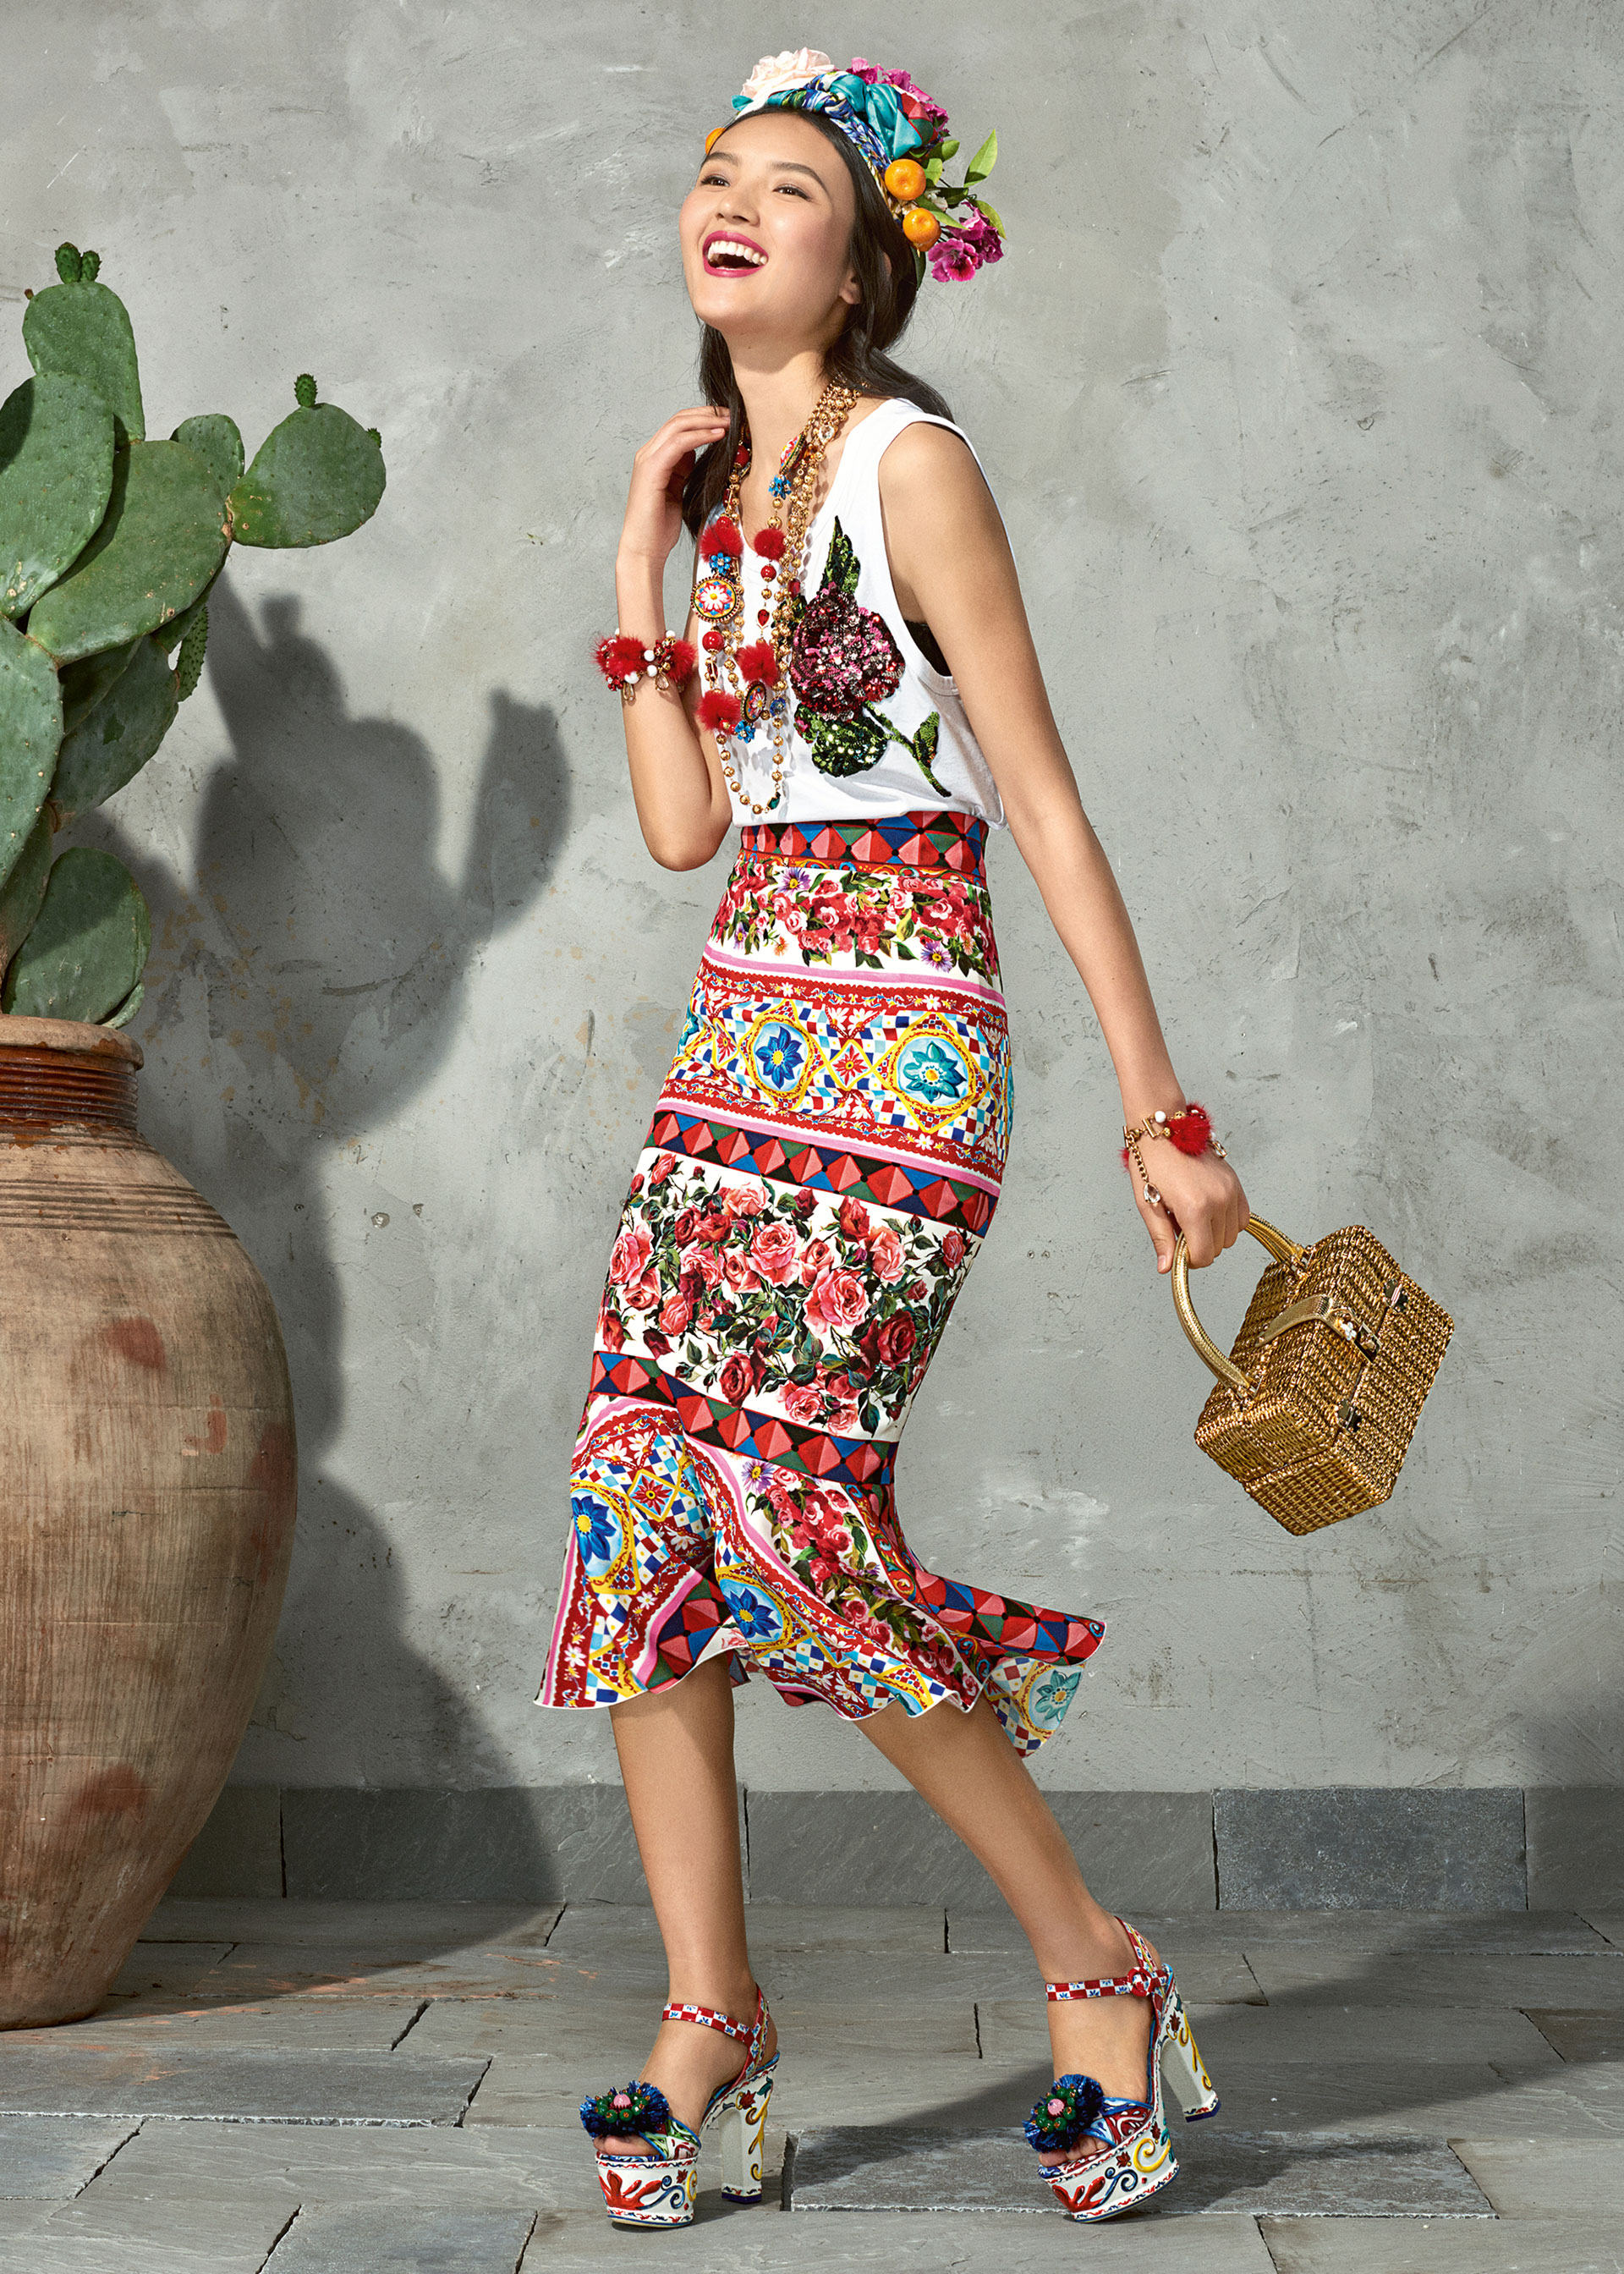 dolce and gabbana summer 2017 woman collection 89 - Dolce & Gabbana/Spring Summer 2017 Collection/ Mambo